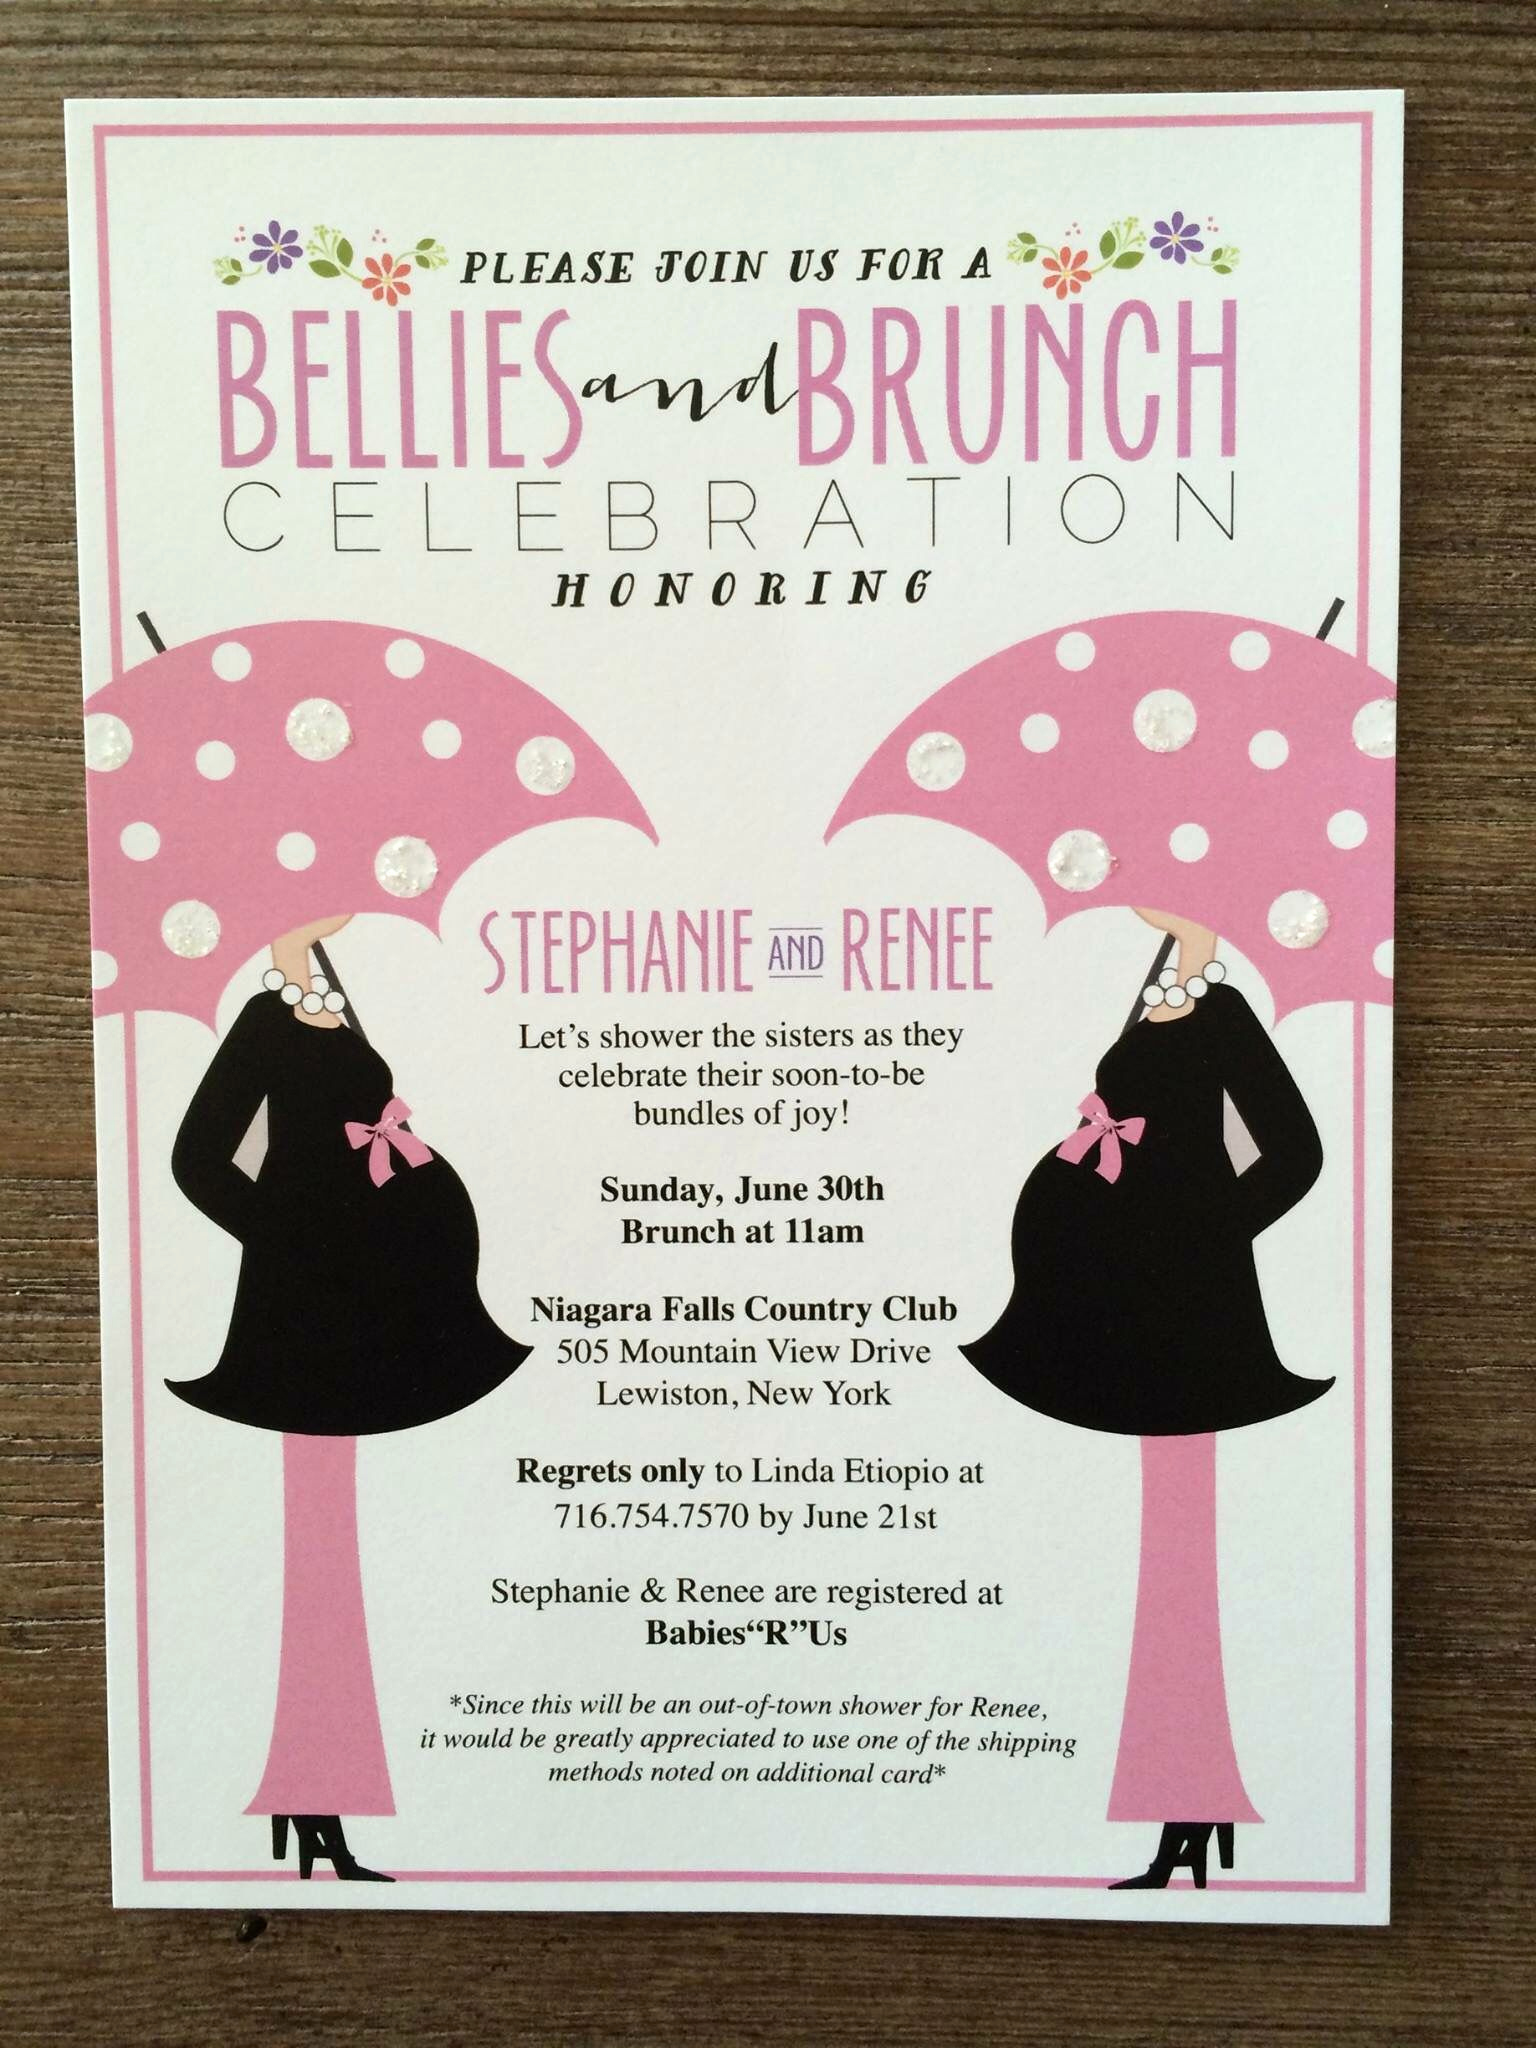 Work Baby Shower Invitation Wording Luxury these Bellies Brunch Invitations are Perfect for A Joint